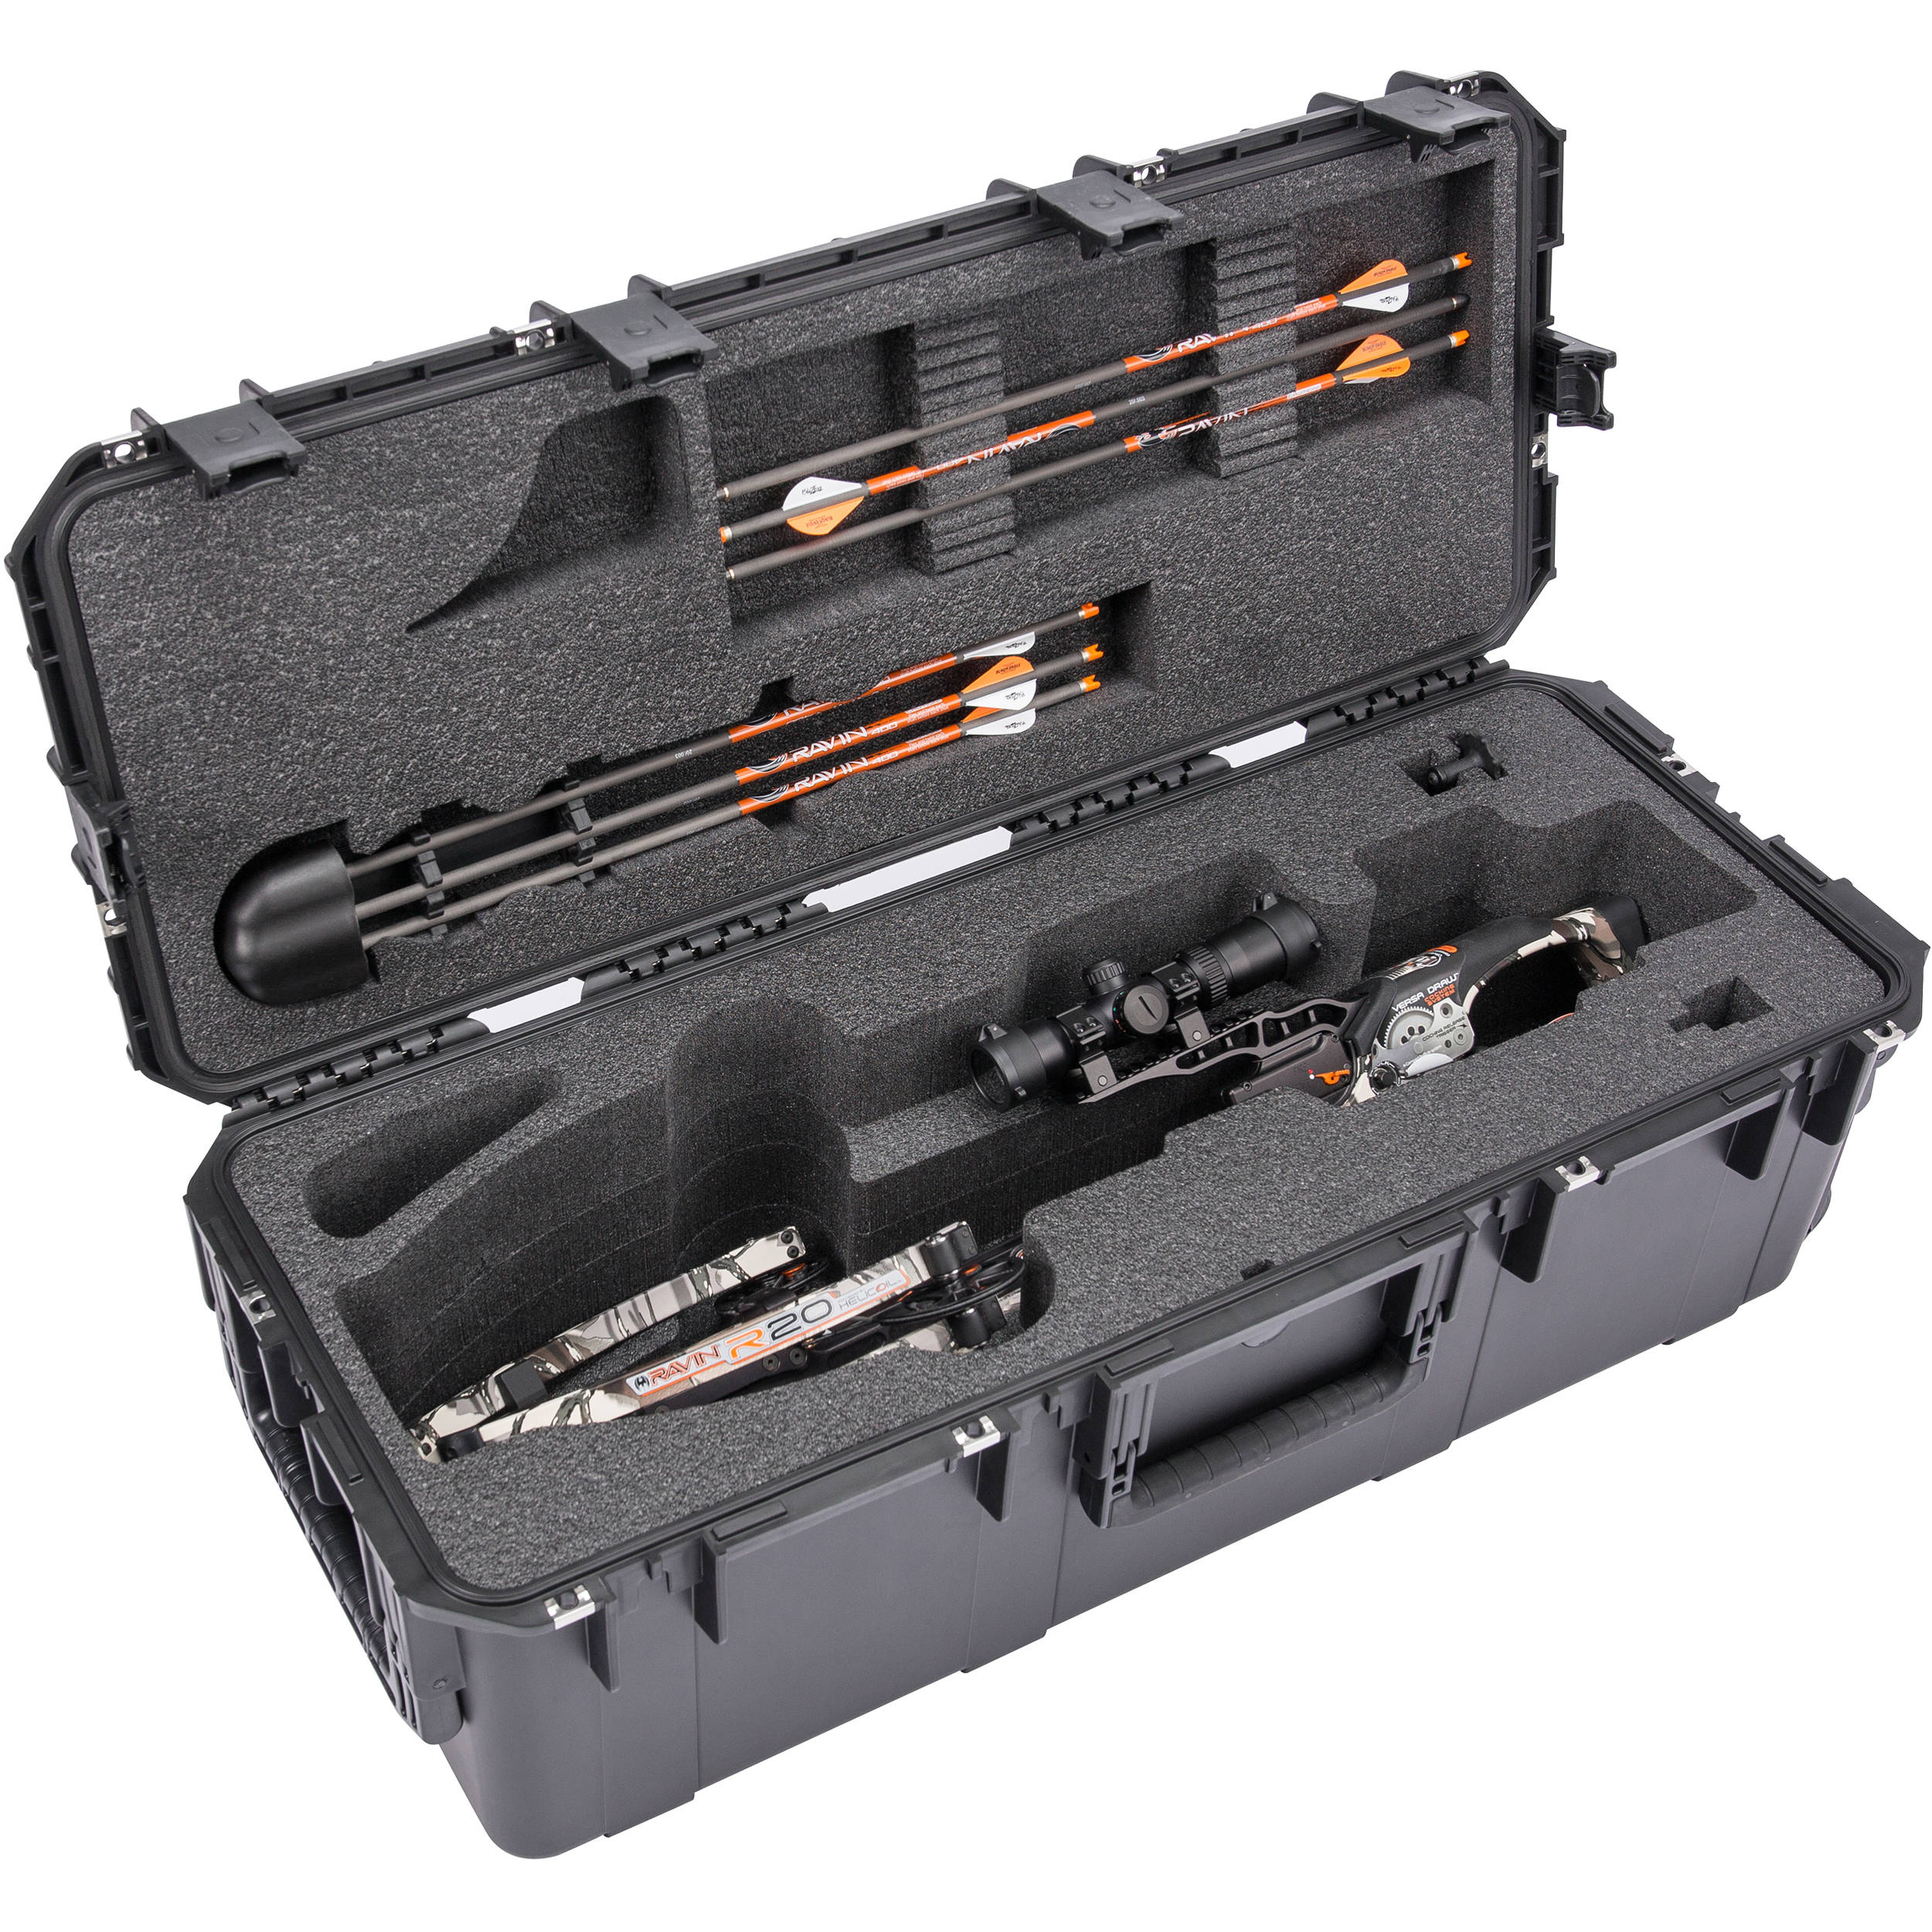 SKB iSeries 3613-12 Ultimate Waterproof Crossbow Case (Black)